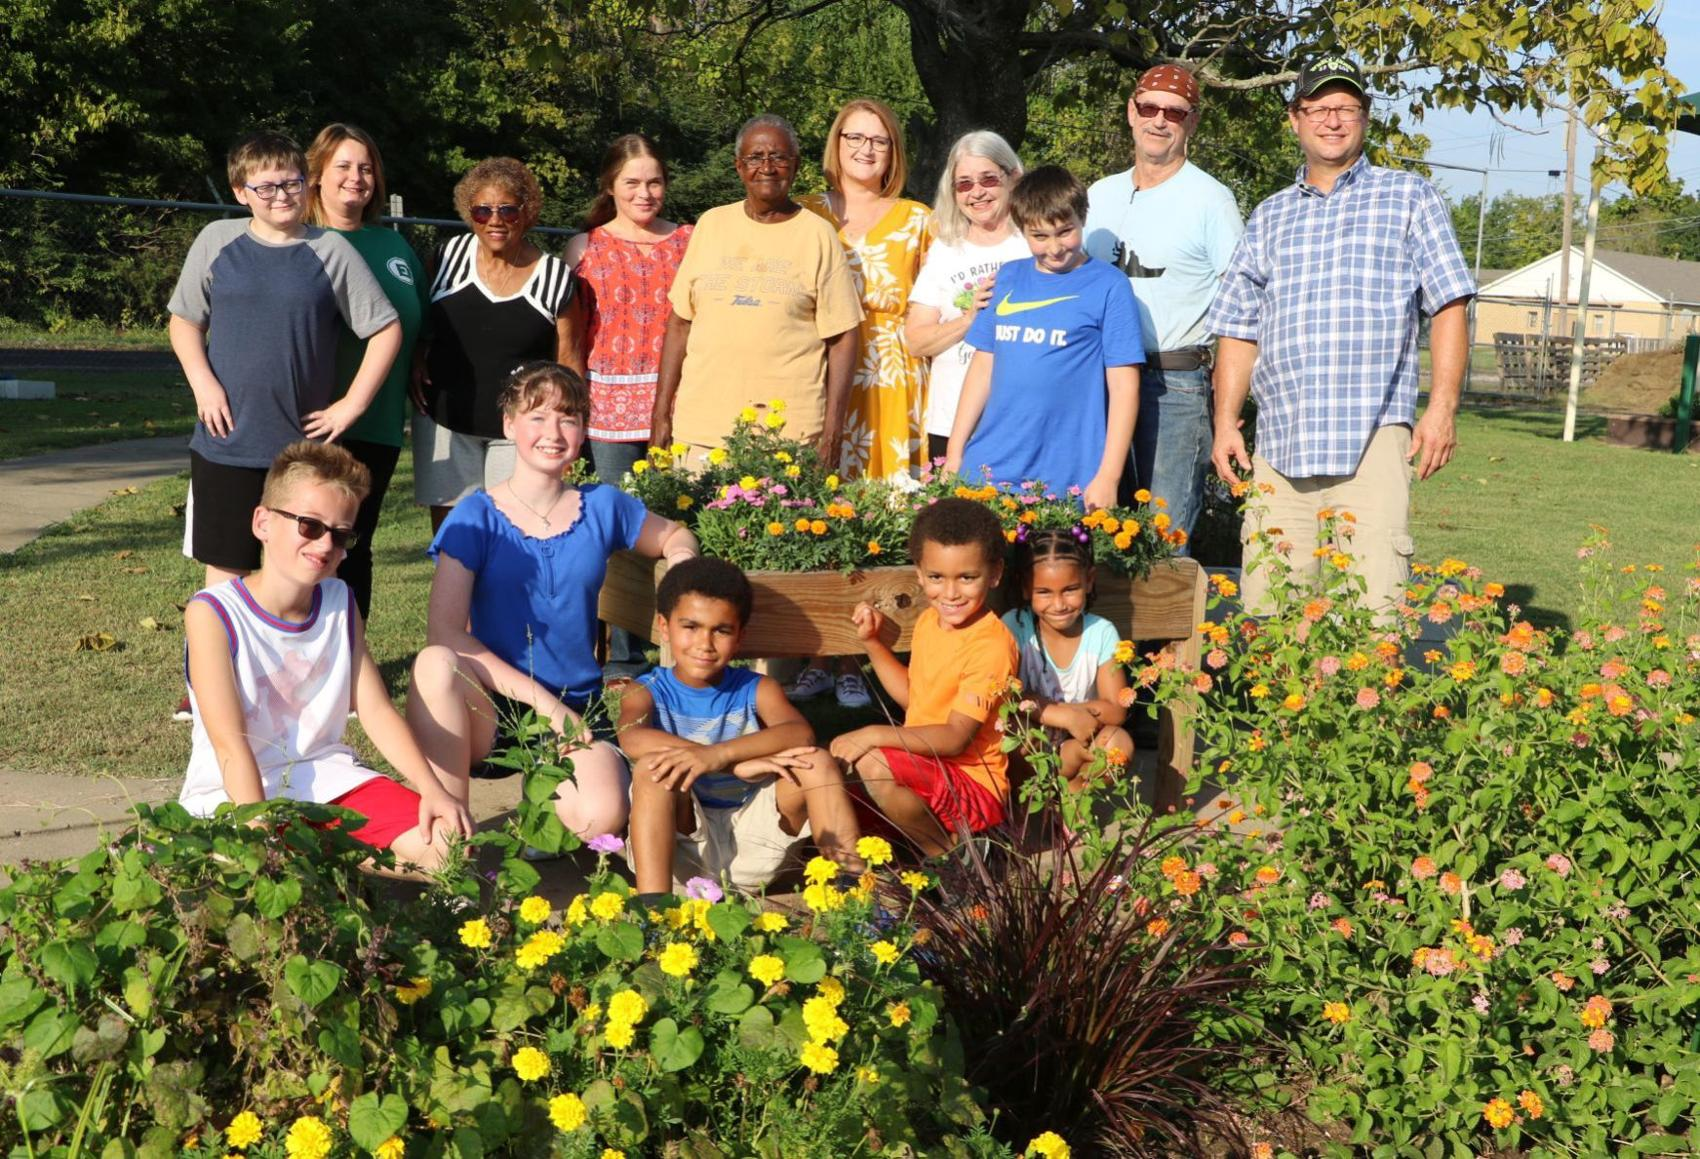 Brighter Futures garden project enhanced with TSET grant